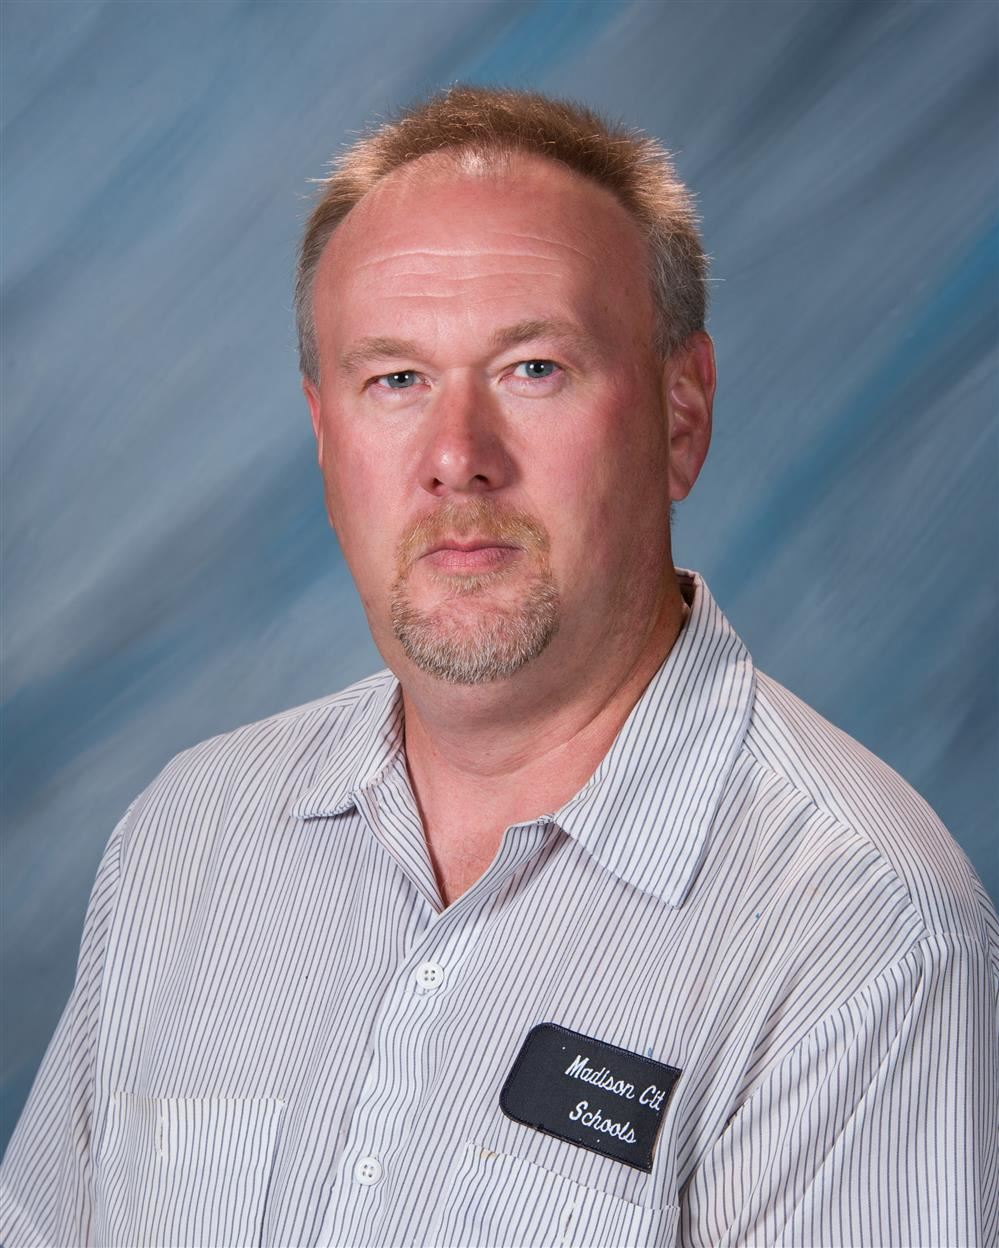 2019-20 Staff Member Of The Year Mr. David Gray